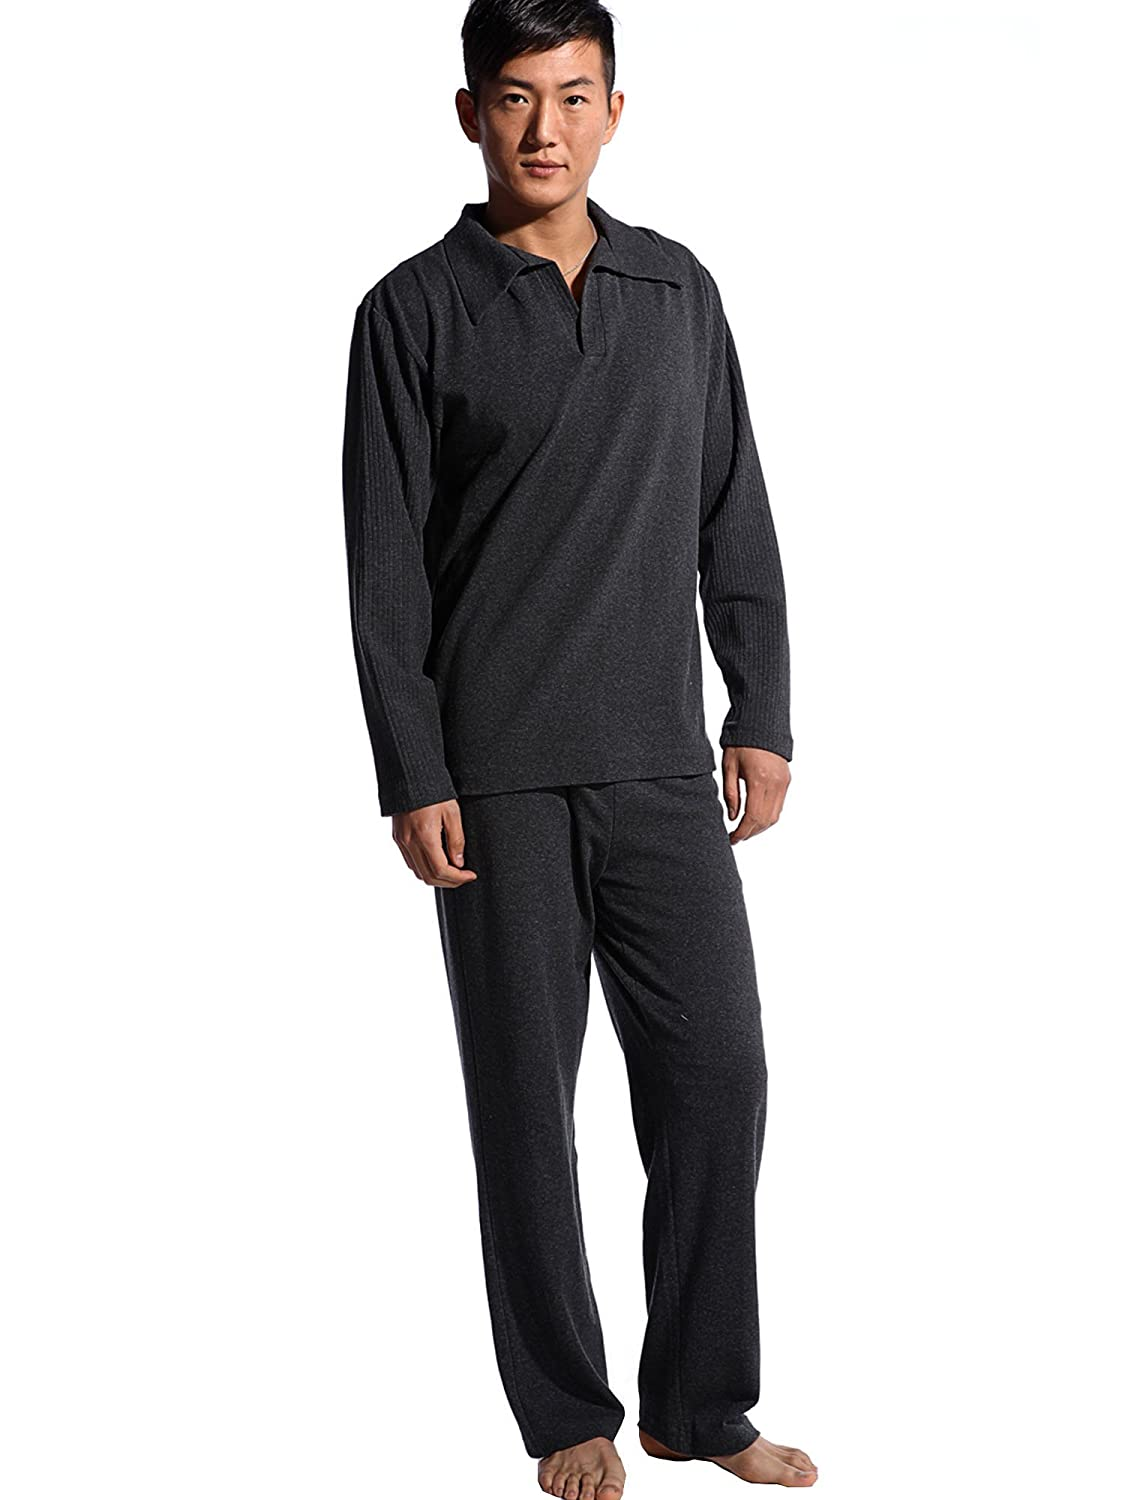 Godsen Men's Two Pieces Pajama Set Long Sleeve Sleepwear Sets 3227